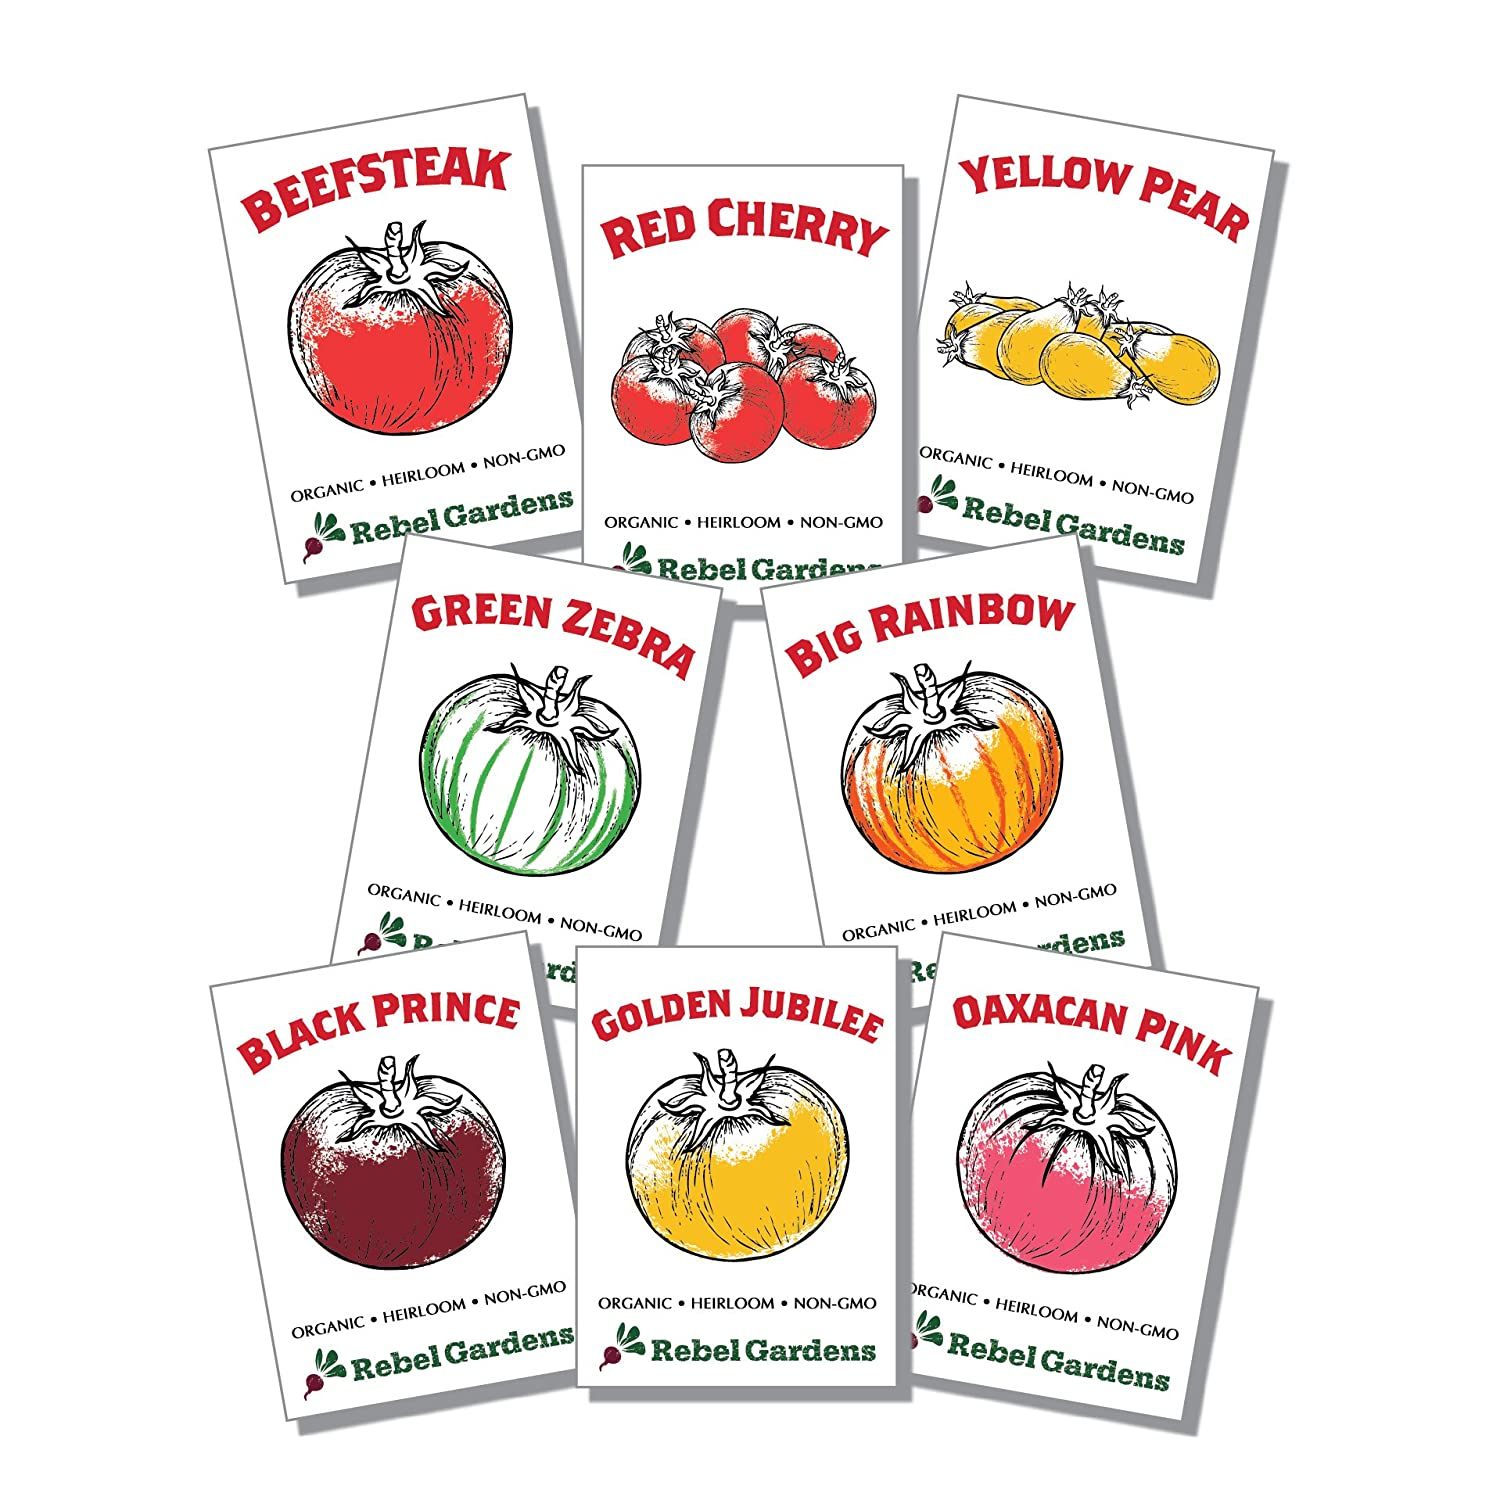 Heirloom Tomato Seeds Organic - 8 Varieties of Non Gmo Seed for Planting